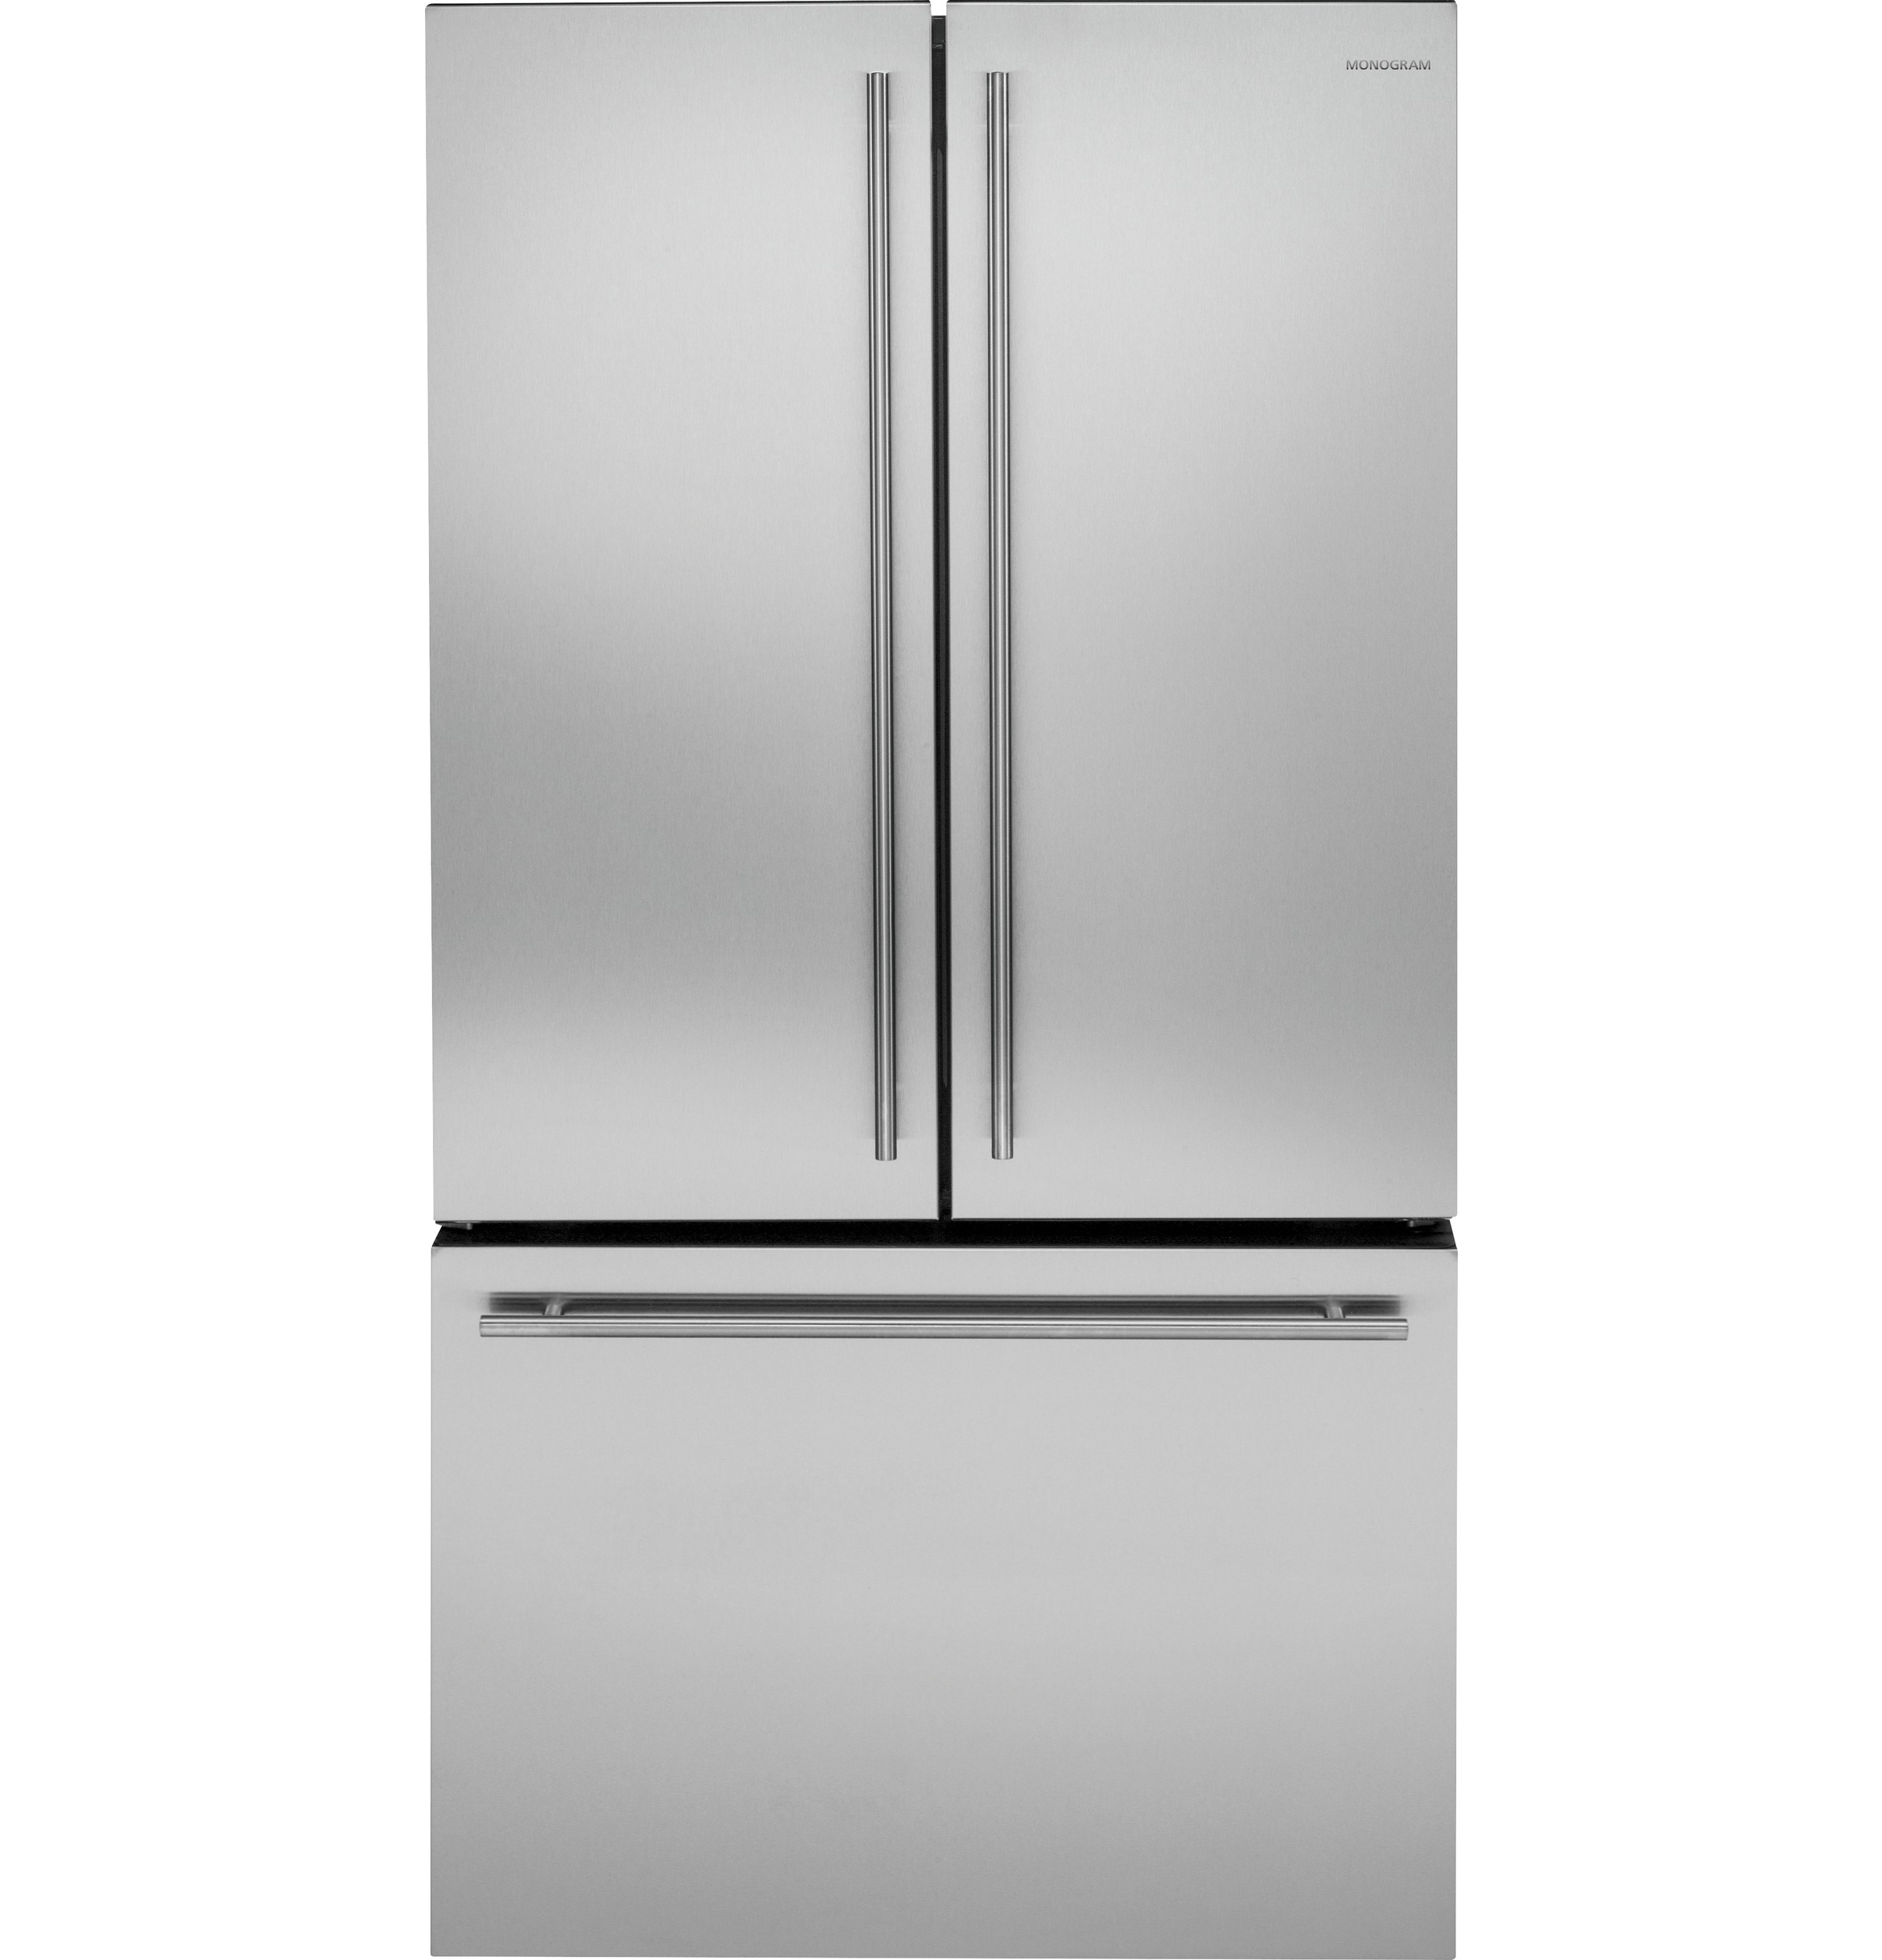 Monogram ENERGY STAR® 23.1 Cu. Ft. Counter-Depth French-Door Refrigerator  sc 1 st  Uneeda Appliance Co. & Monogram - ZWE23ESHSS - Monogram ENERGY STAR® 23.1 Cu. Ft. Counter ...